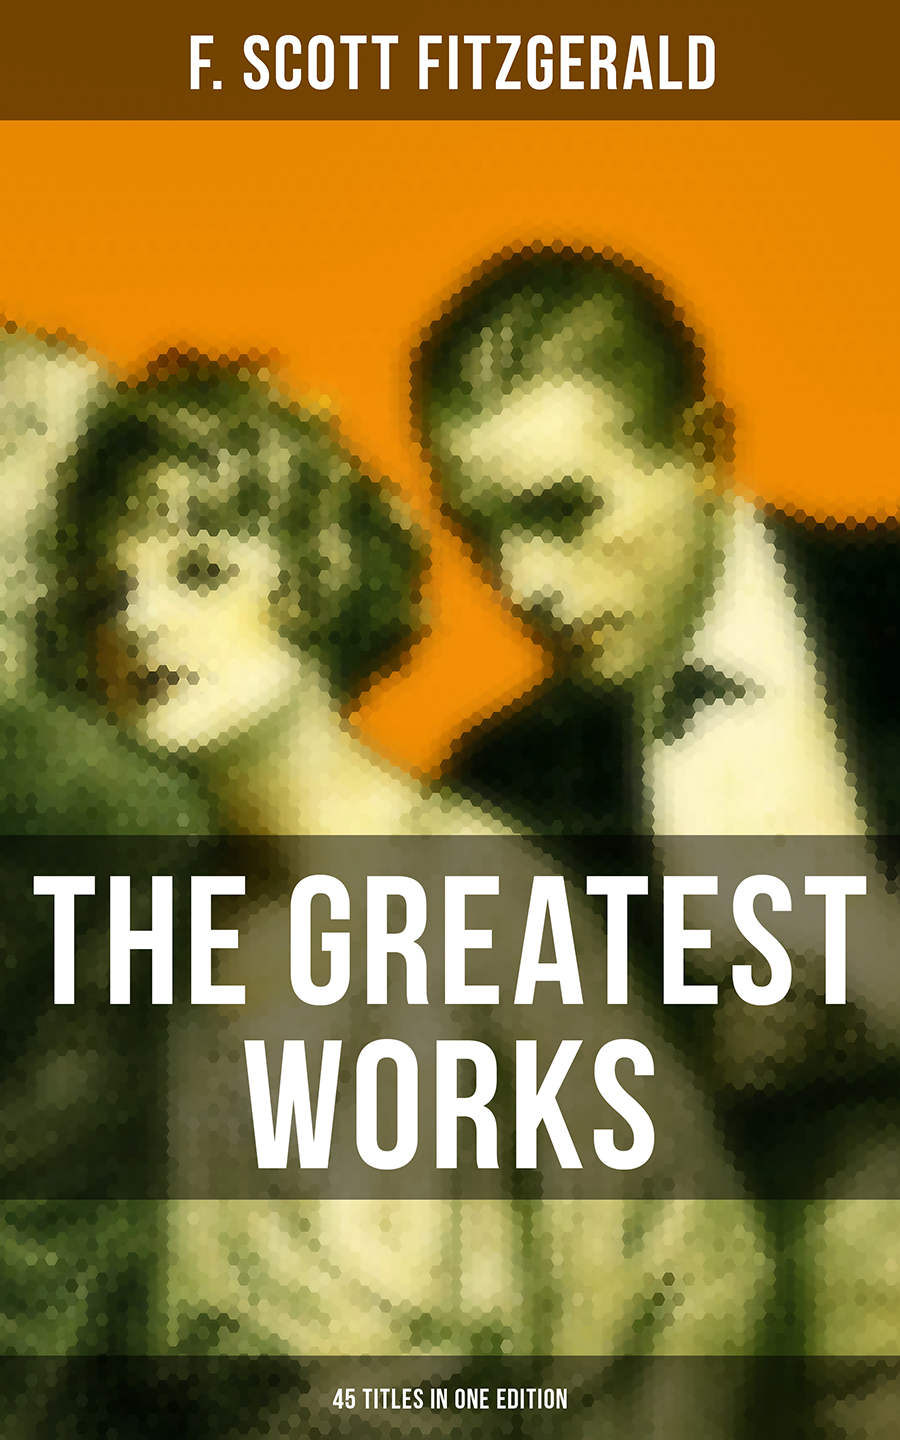 F. Scott Fitzgerald The Greatest Works of F. Scott Fitzgerald - 45 Titles in One Edition f scott fitzgerald the last tycoon isbn 978 5 521 07031 2